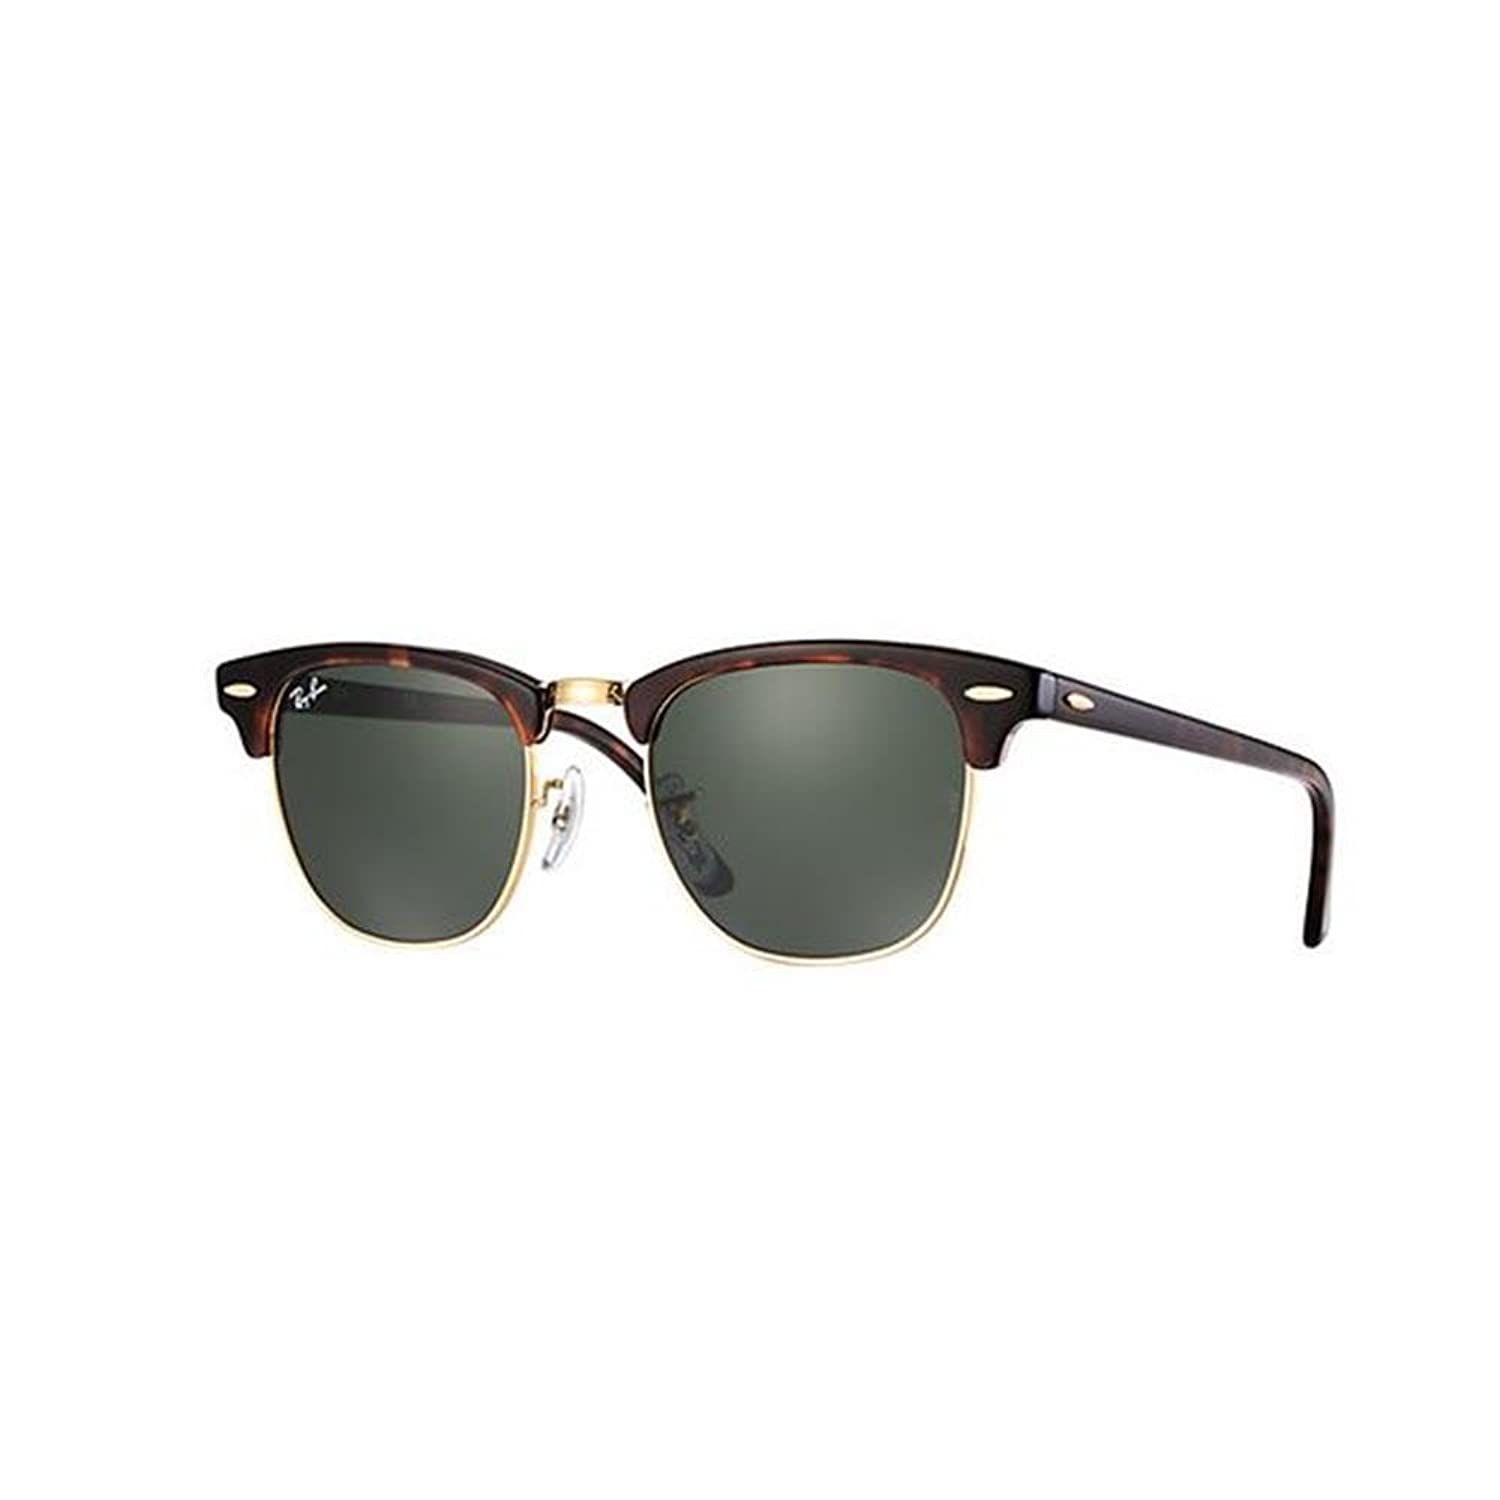 ray ban clubmaster sunglasses the fashion spot  amazon: ray ban clubmaster mock tortoise/ arista frame crystal green lenses 49mm non polarized: ray ban: clothing